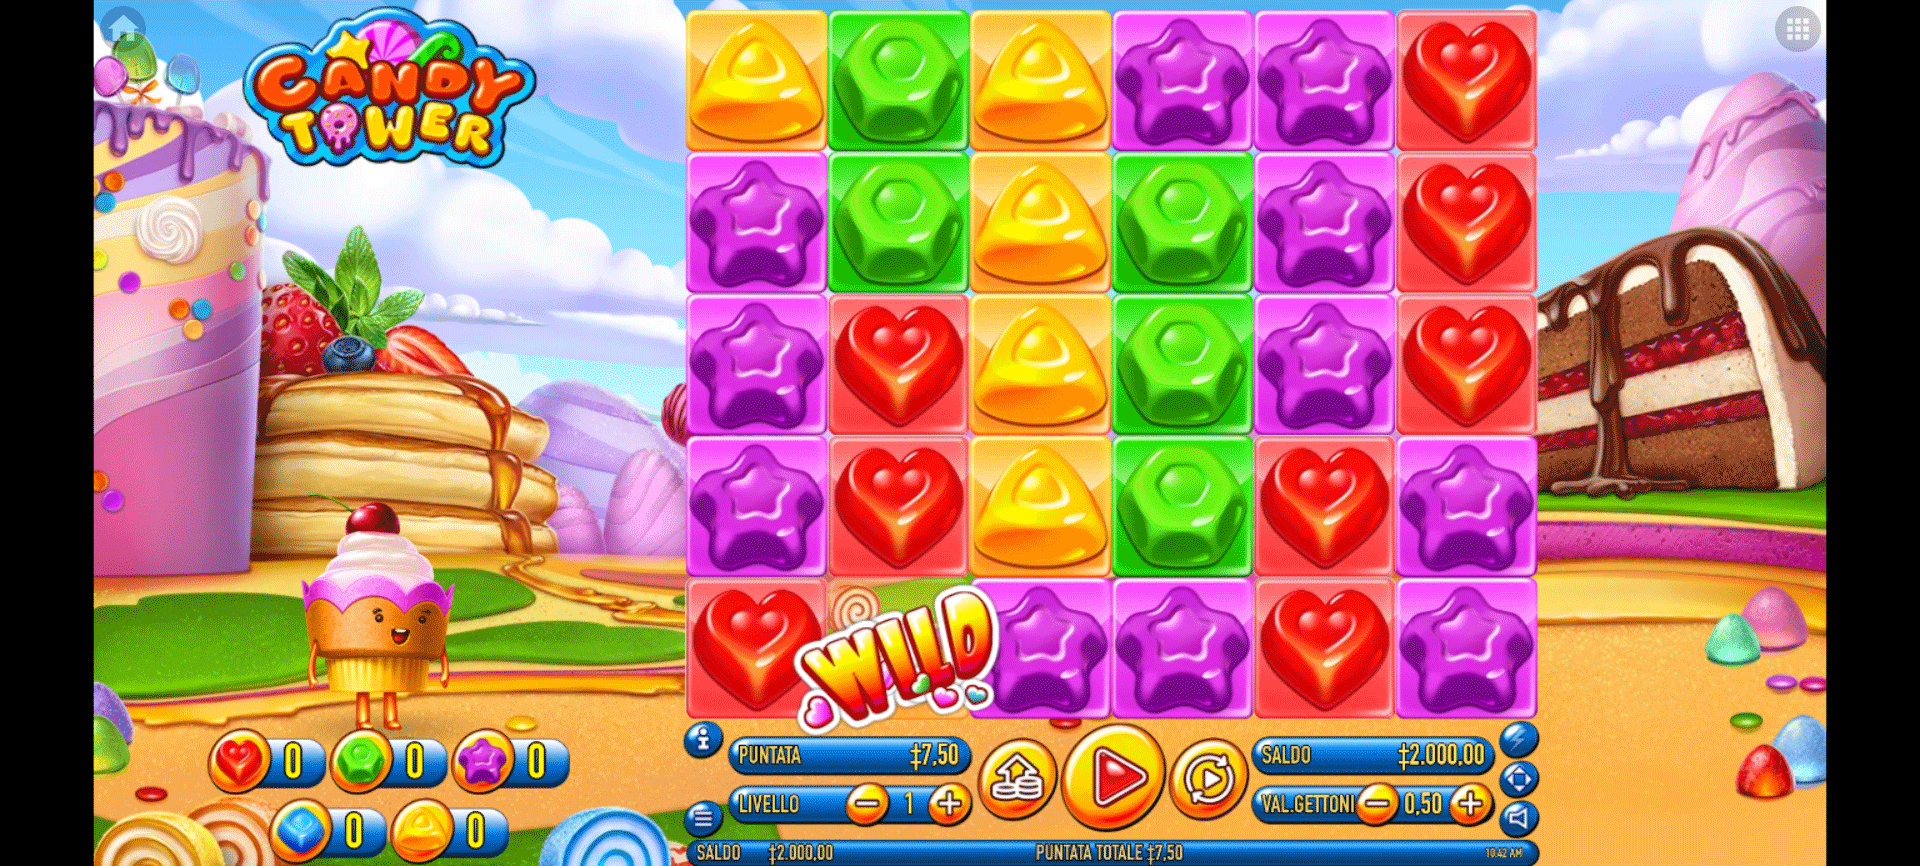 Slot Candy Tower